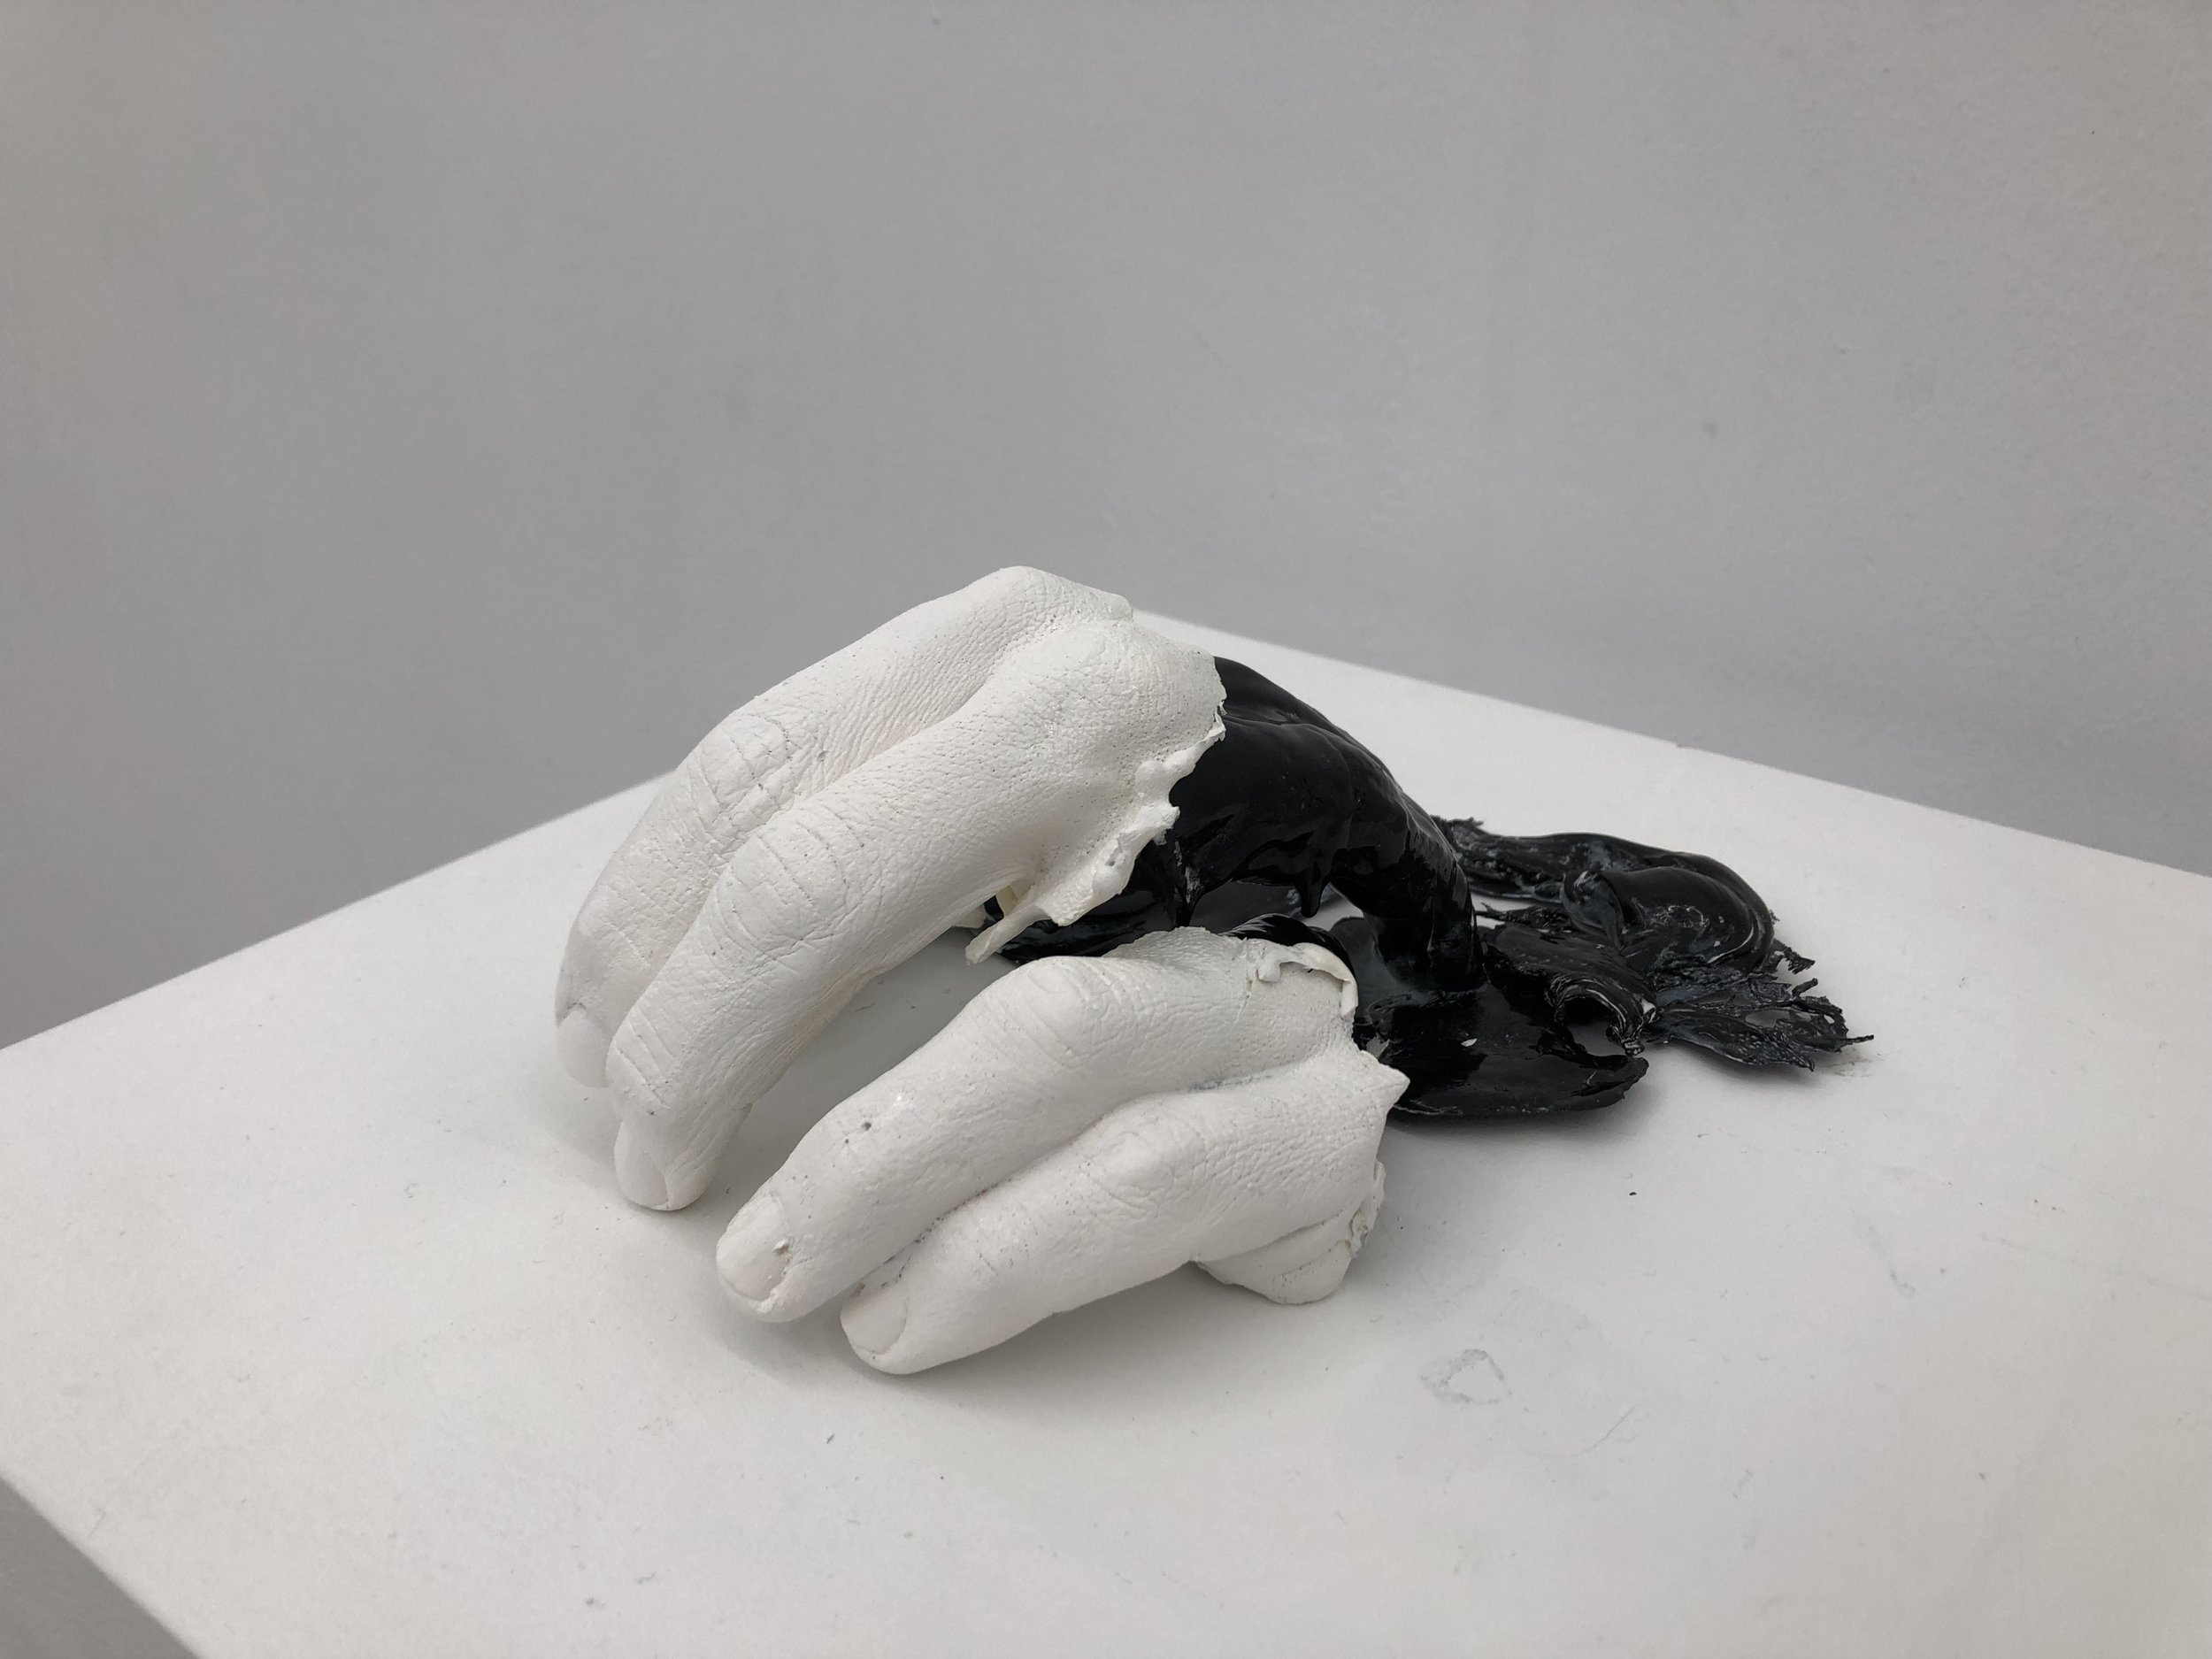 Amparo Sard, 2019, Untitled (Or: Hand in and out), Series: Precarious reactions